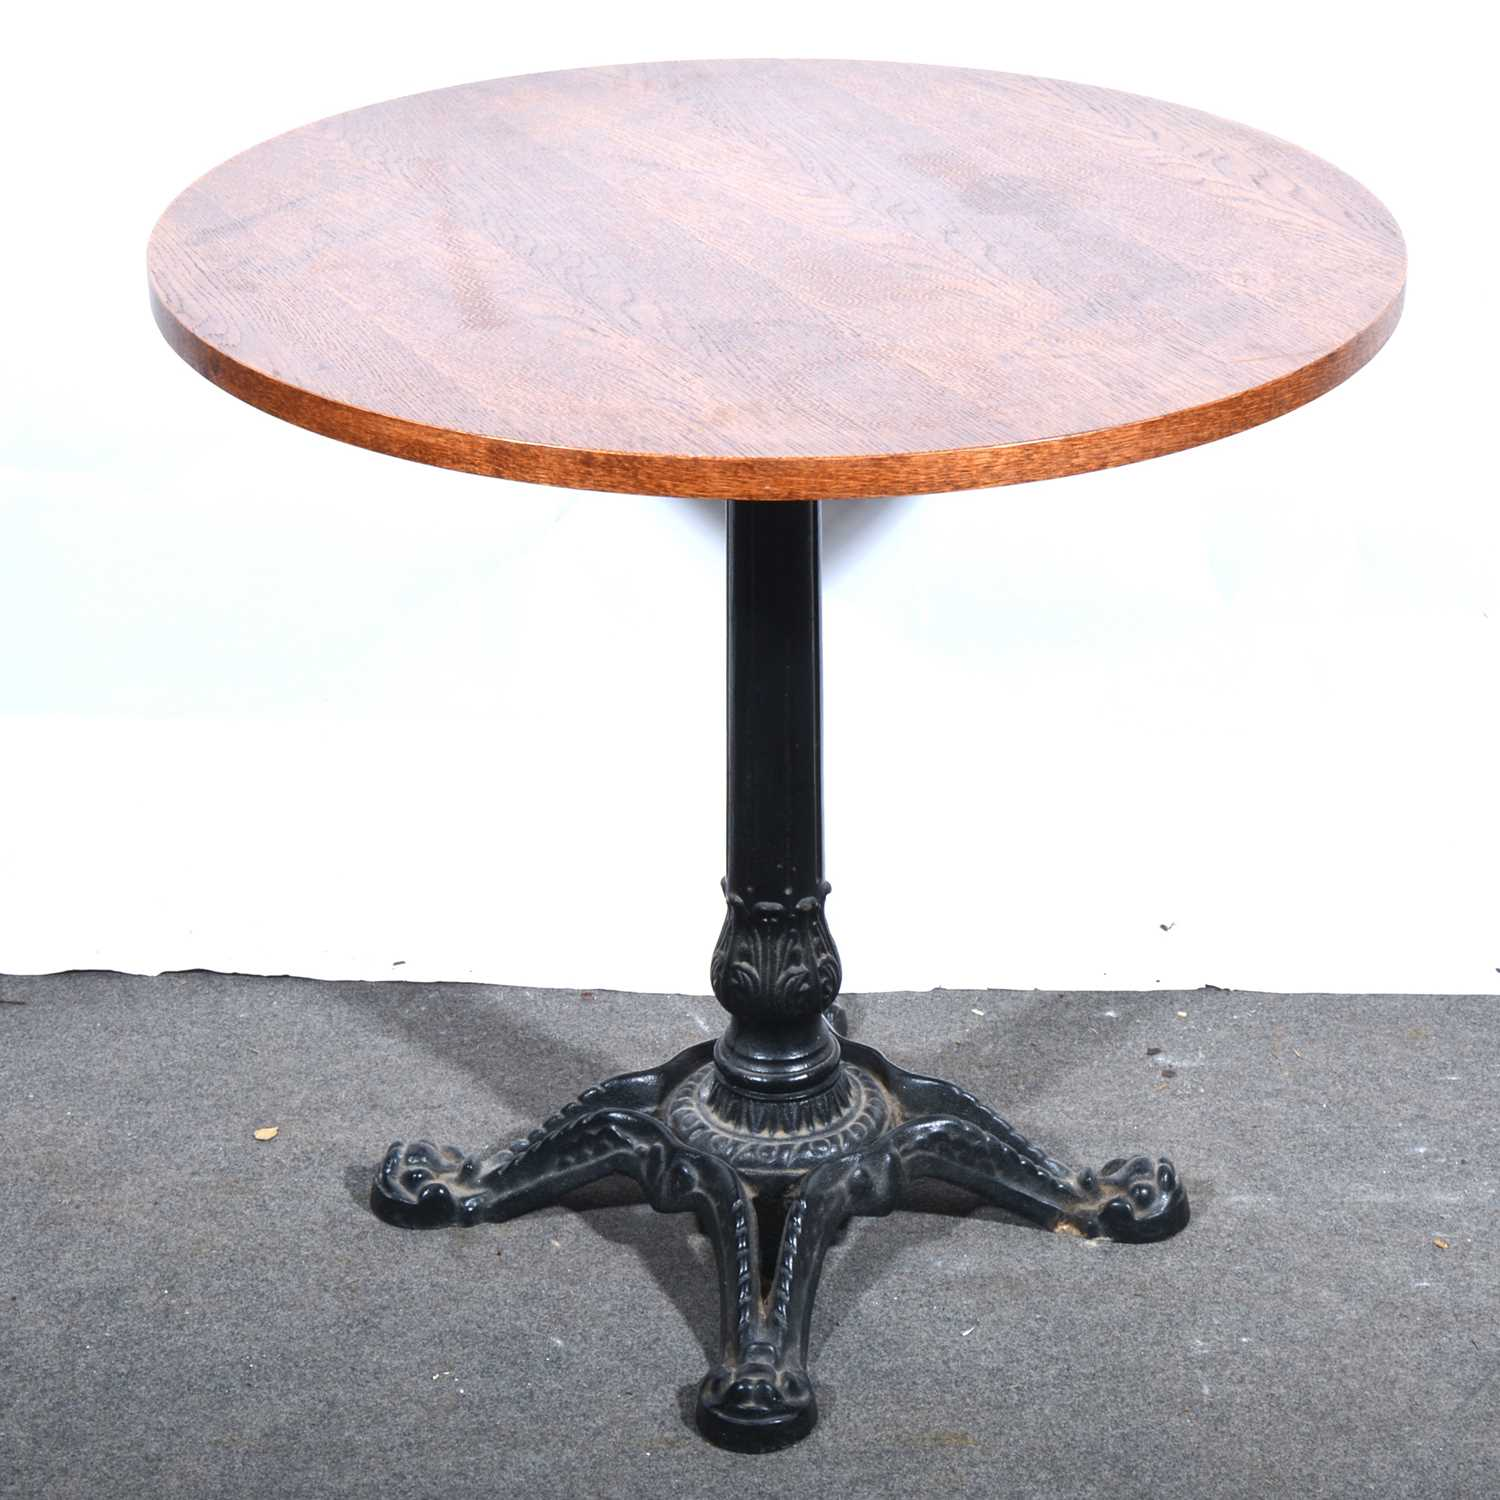 Lot 24 - A reproduction cast iron pub table, and an oak stool.